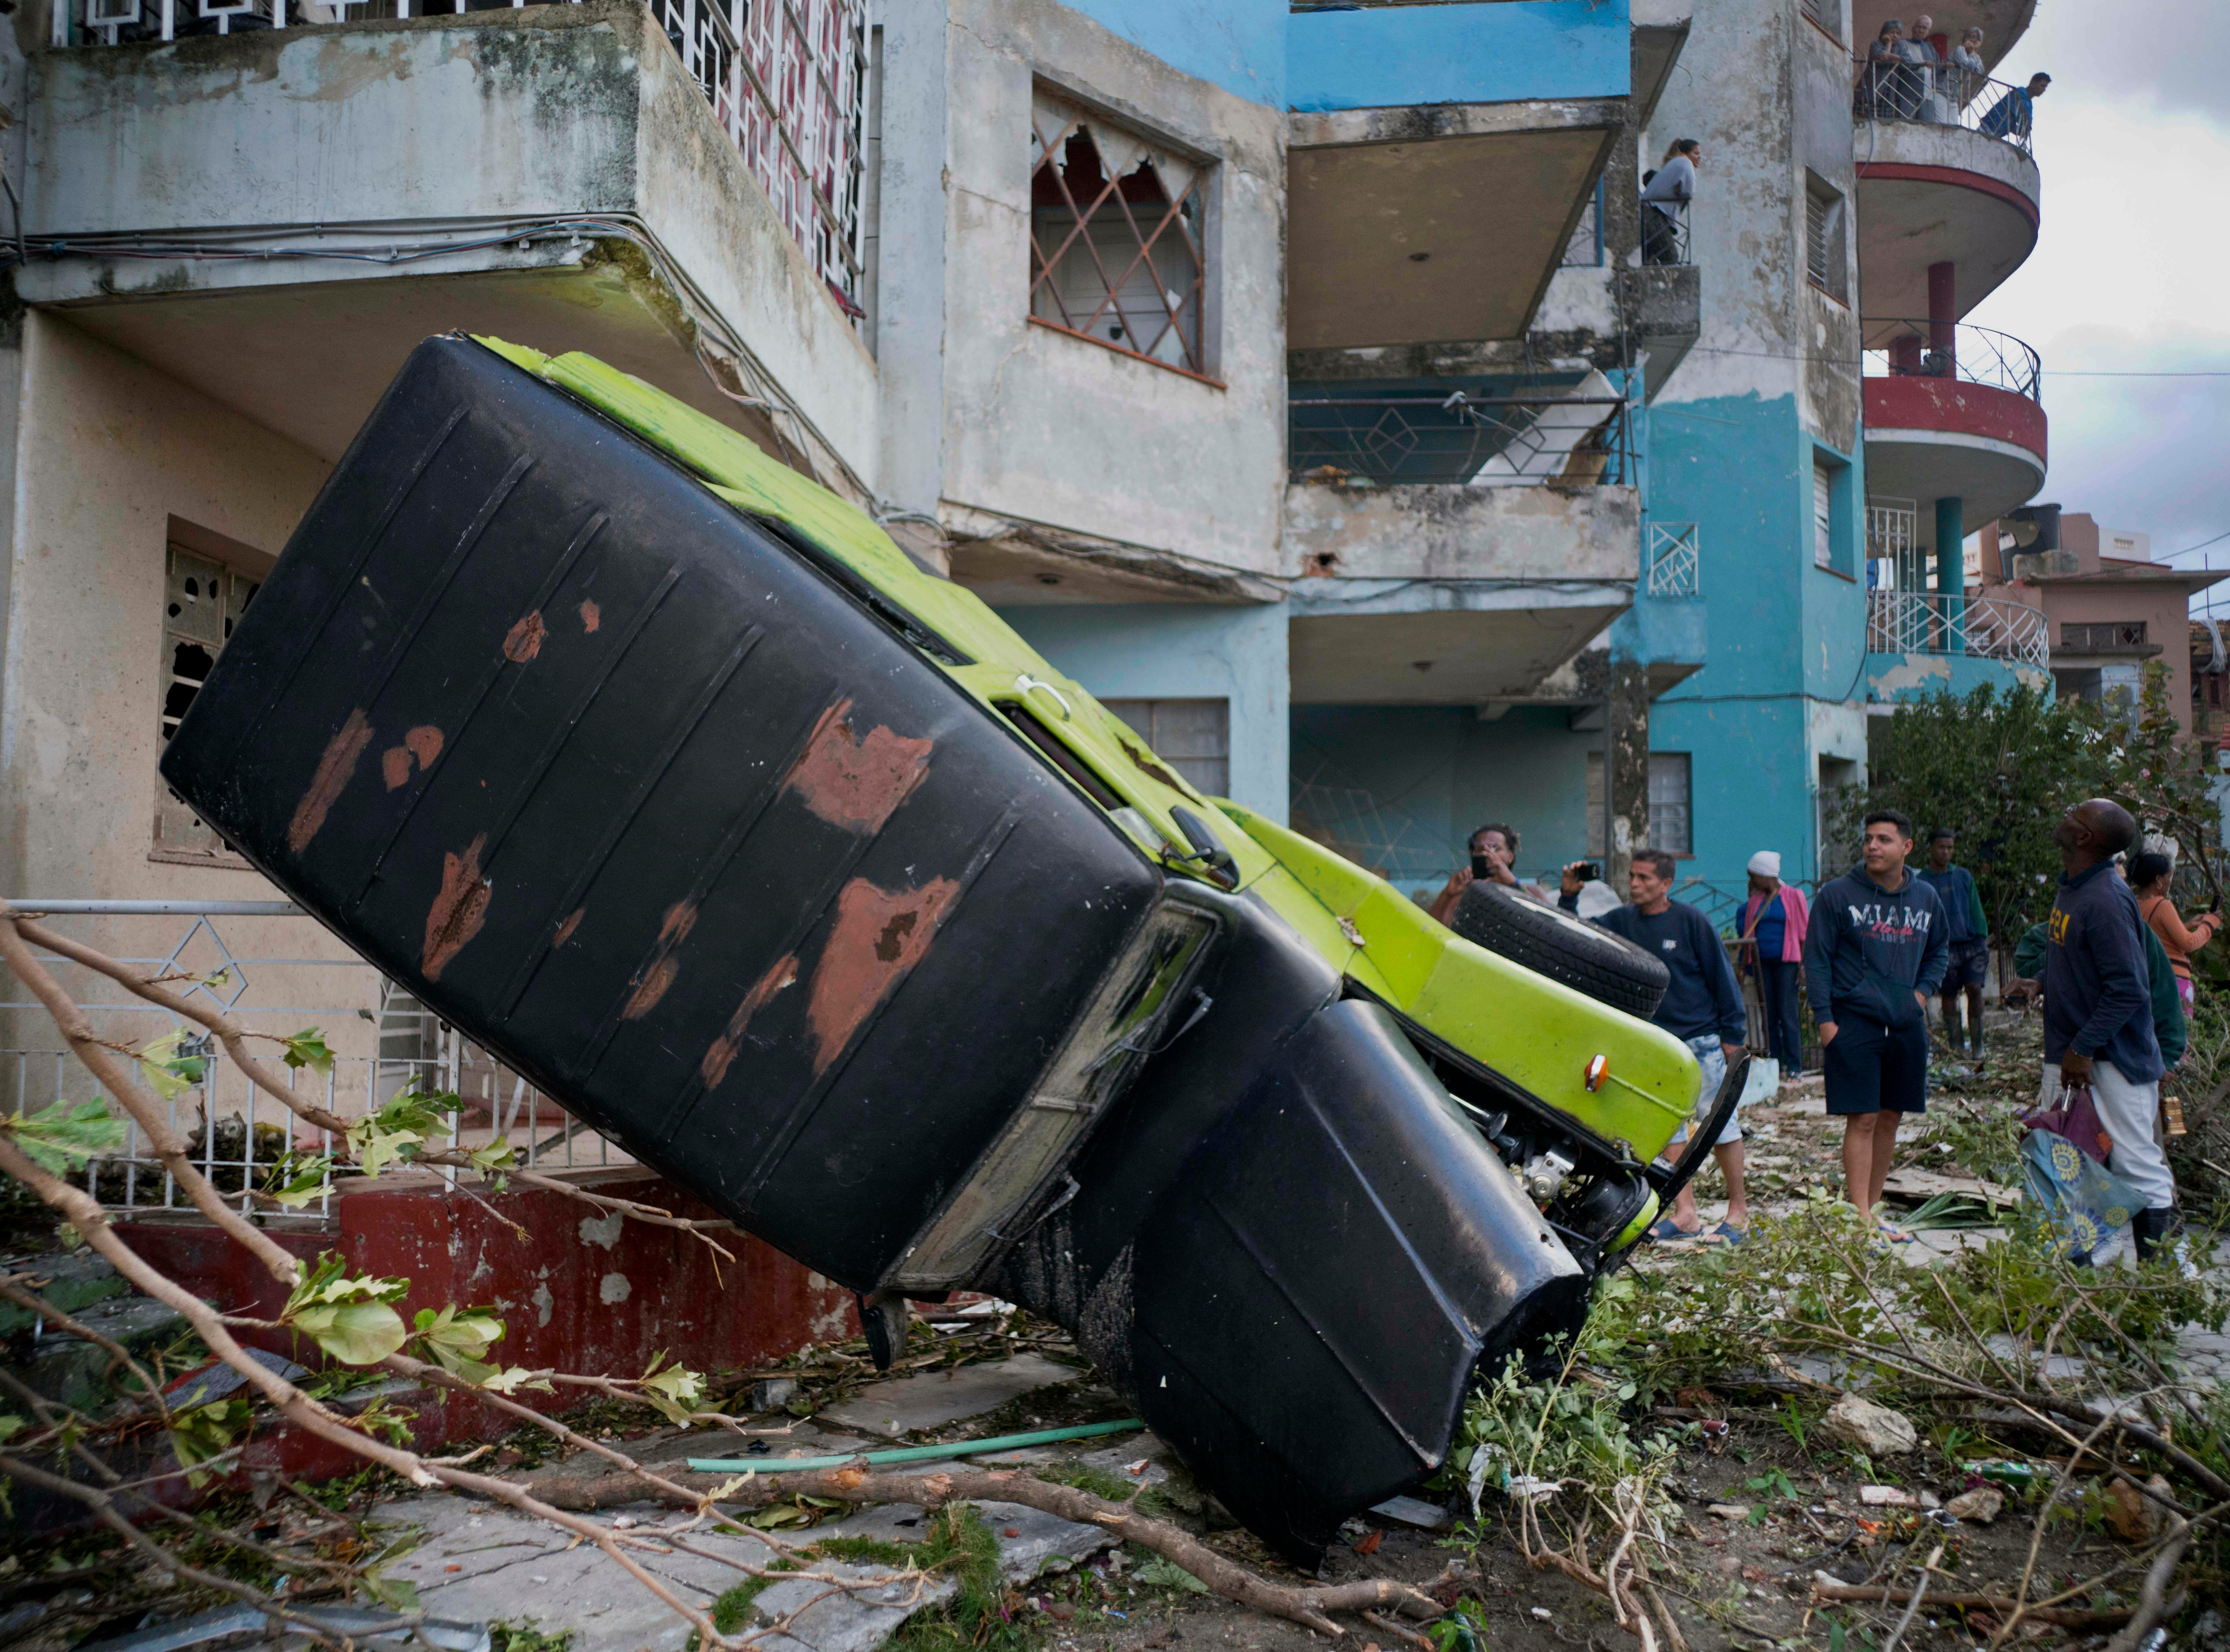 A truck is toppled against a home after a tornado in Havana, Cuba, Monday, Jan. 28, 2019.